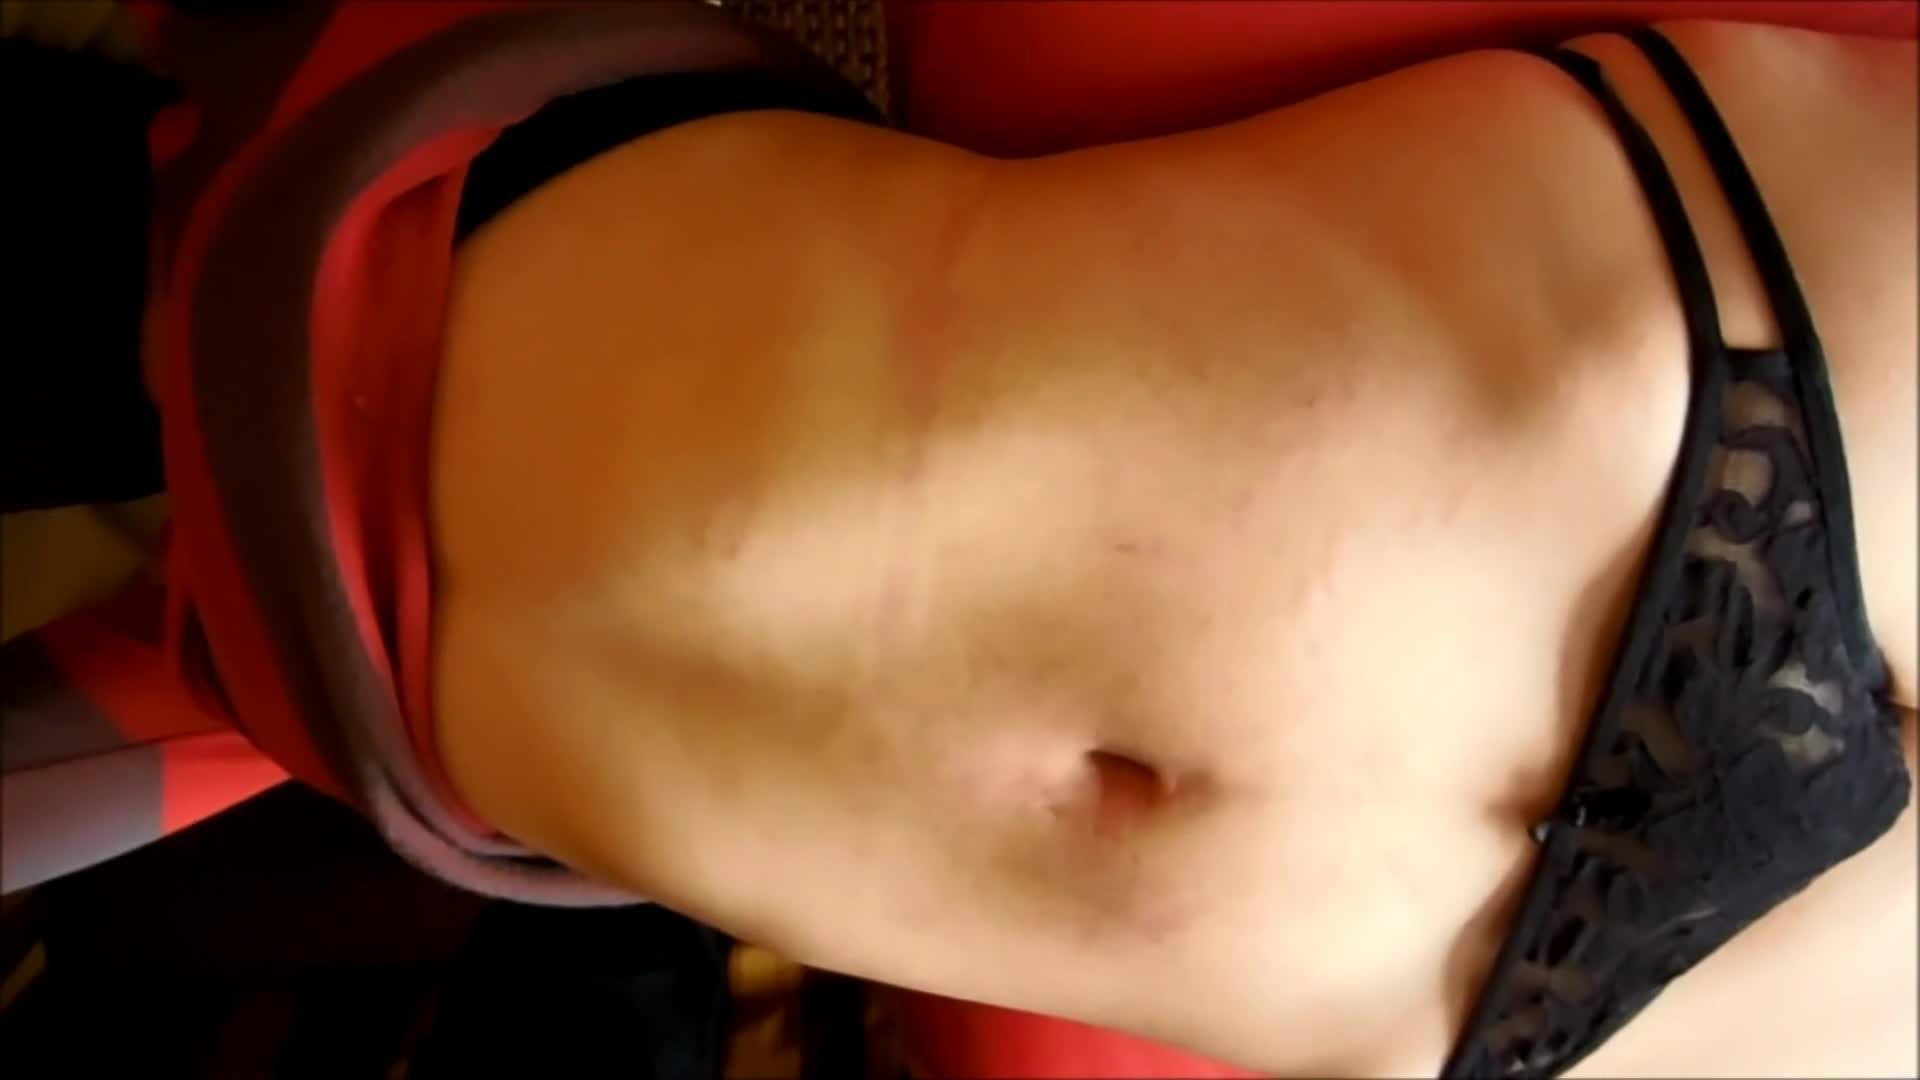 Hot Belly Button Fetish